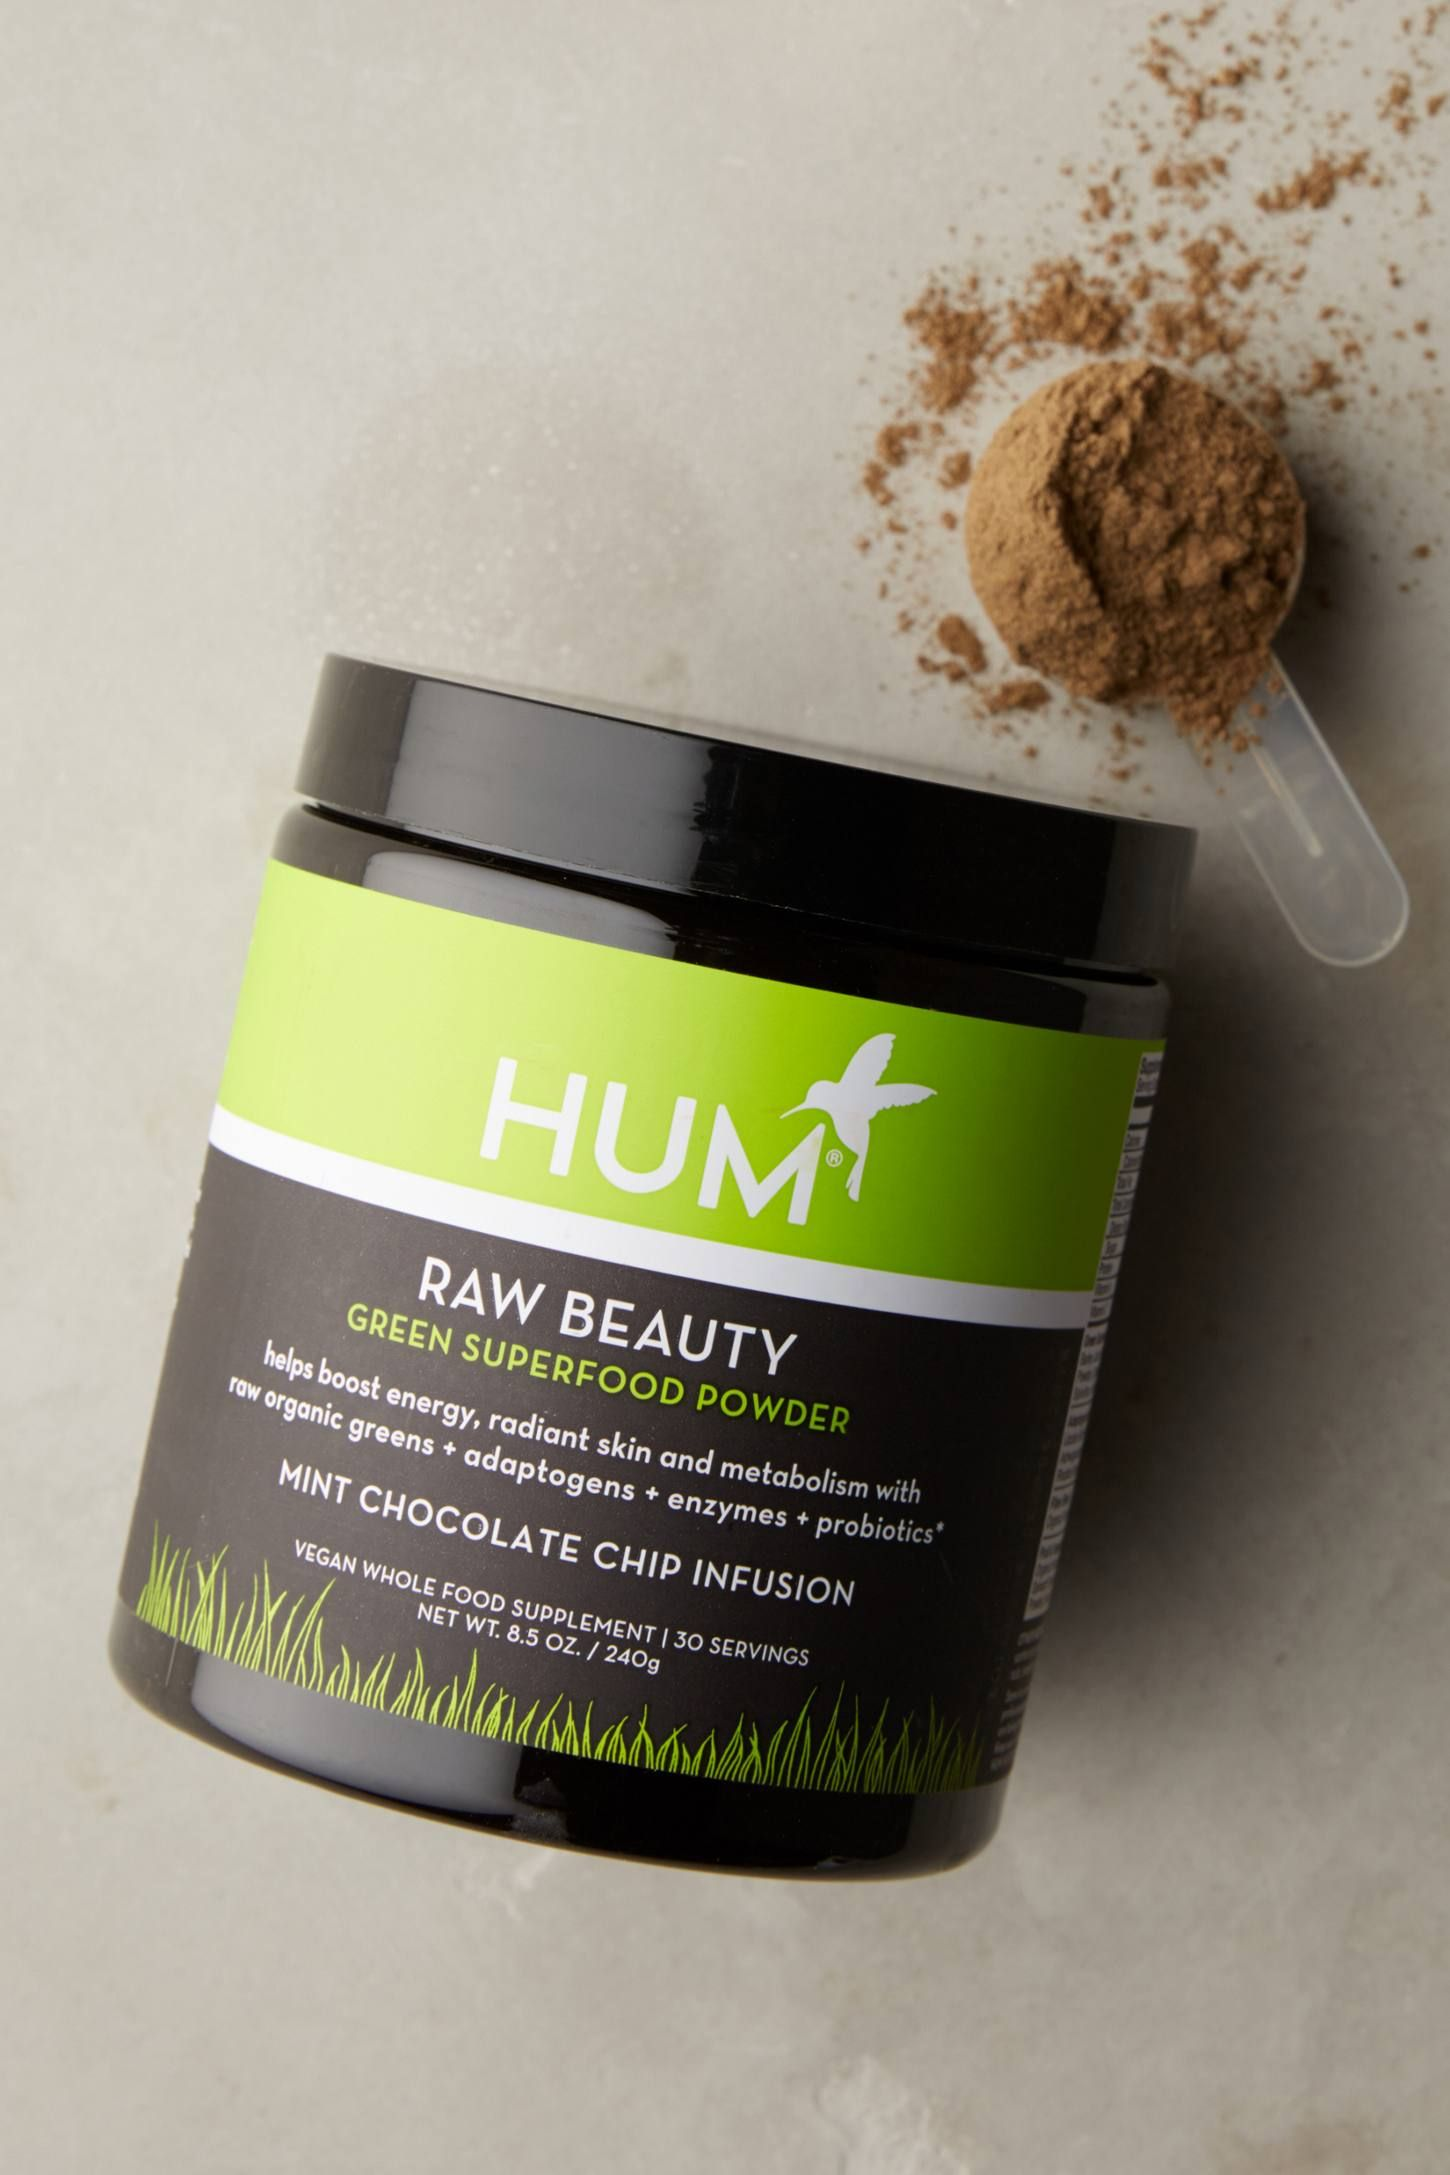 Hum Nutrition Raw Beauty Green Superfood Powder Green Superfood Powder Superfood Powder Green Superfood